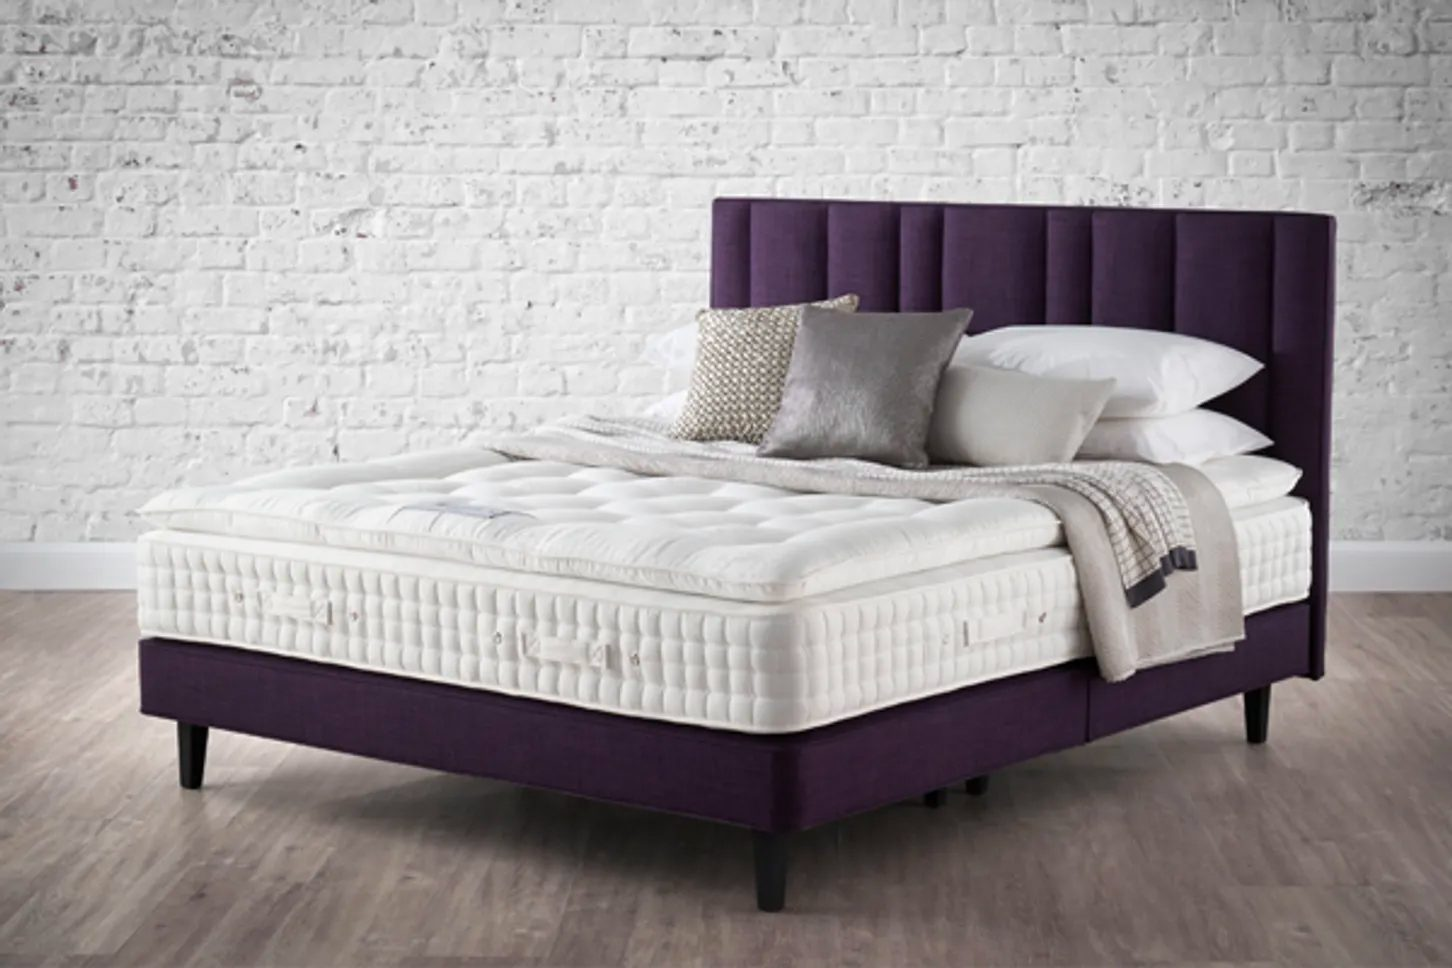 Hypnos Pillows Belgica Furniture